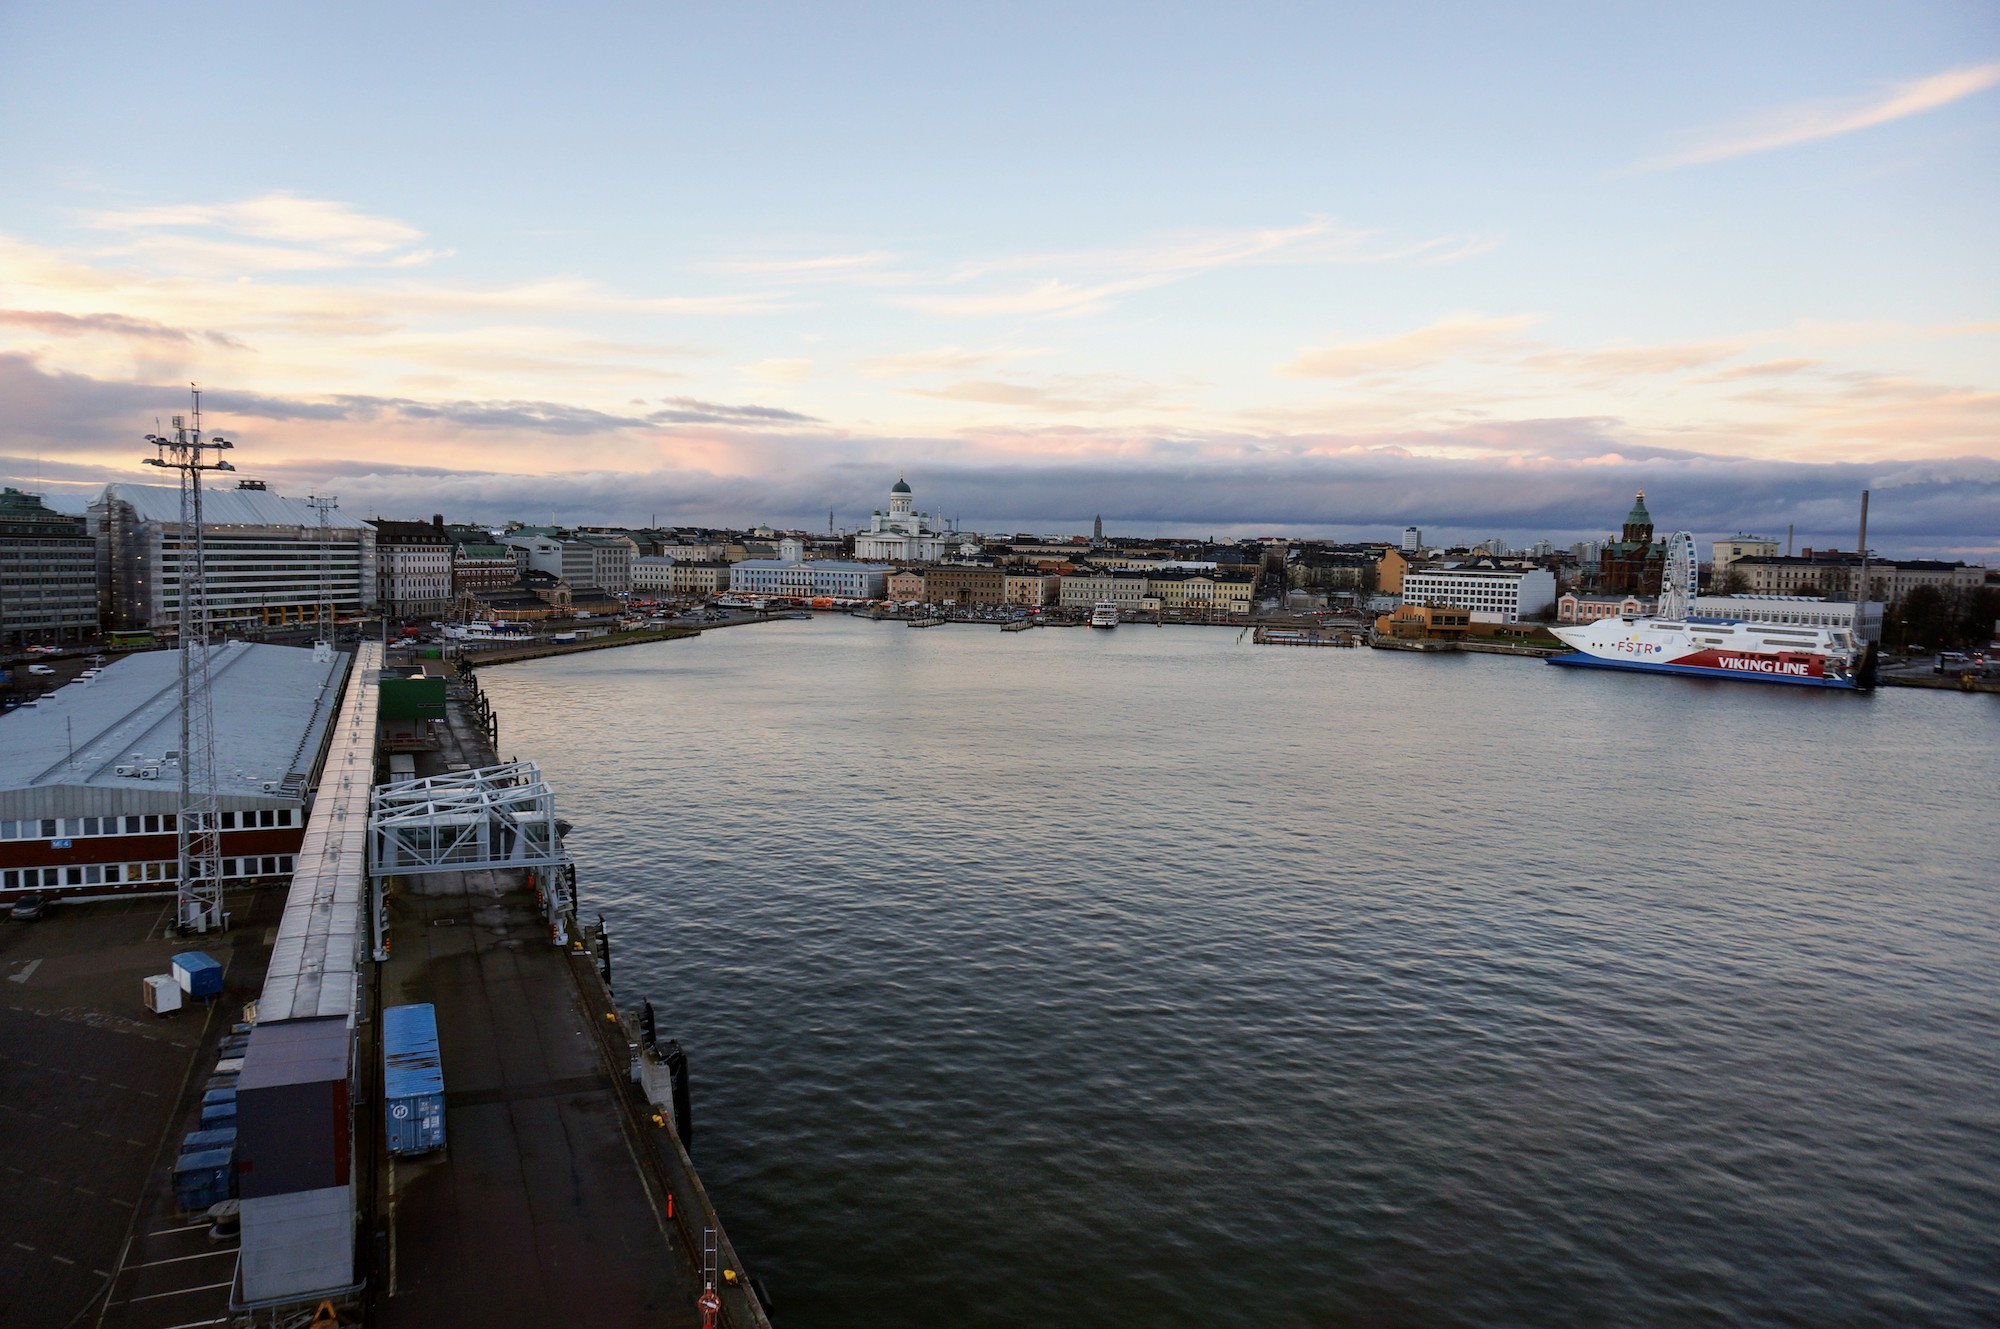 Aboard a ferry docked at Olypmia Terminal, towards the left is Makasiini terminal, and to the right, a Viking Line ship docked at Katajanokka.